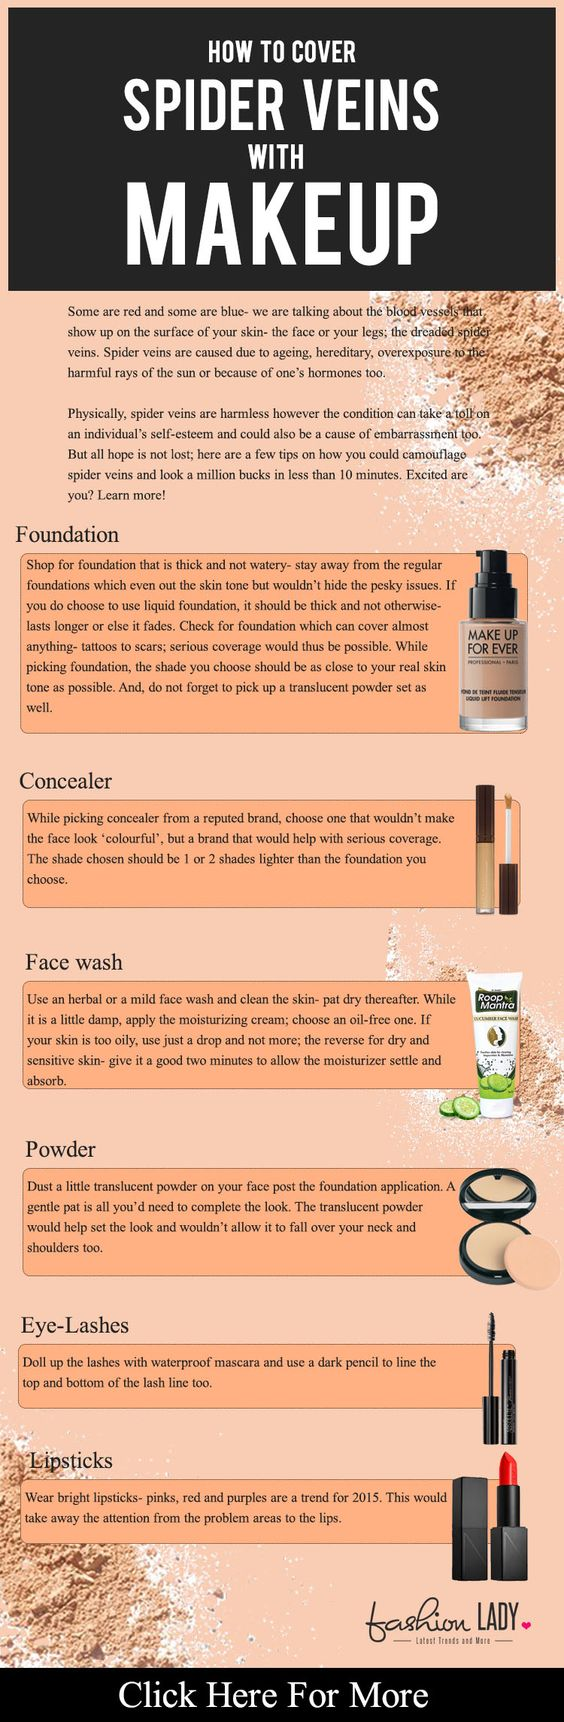 Tips And Advice On How to Cover Spider Veins With Makeup .